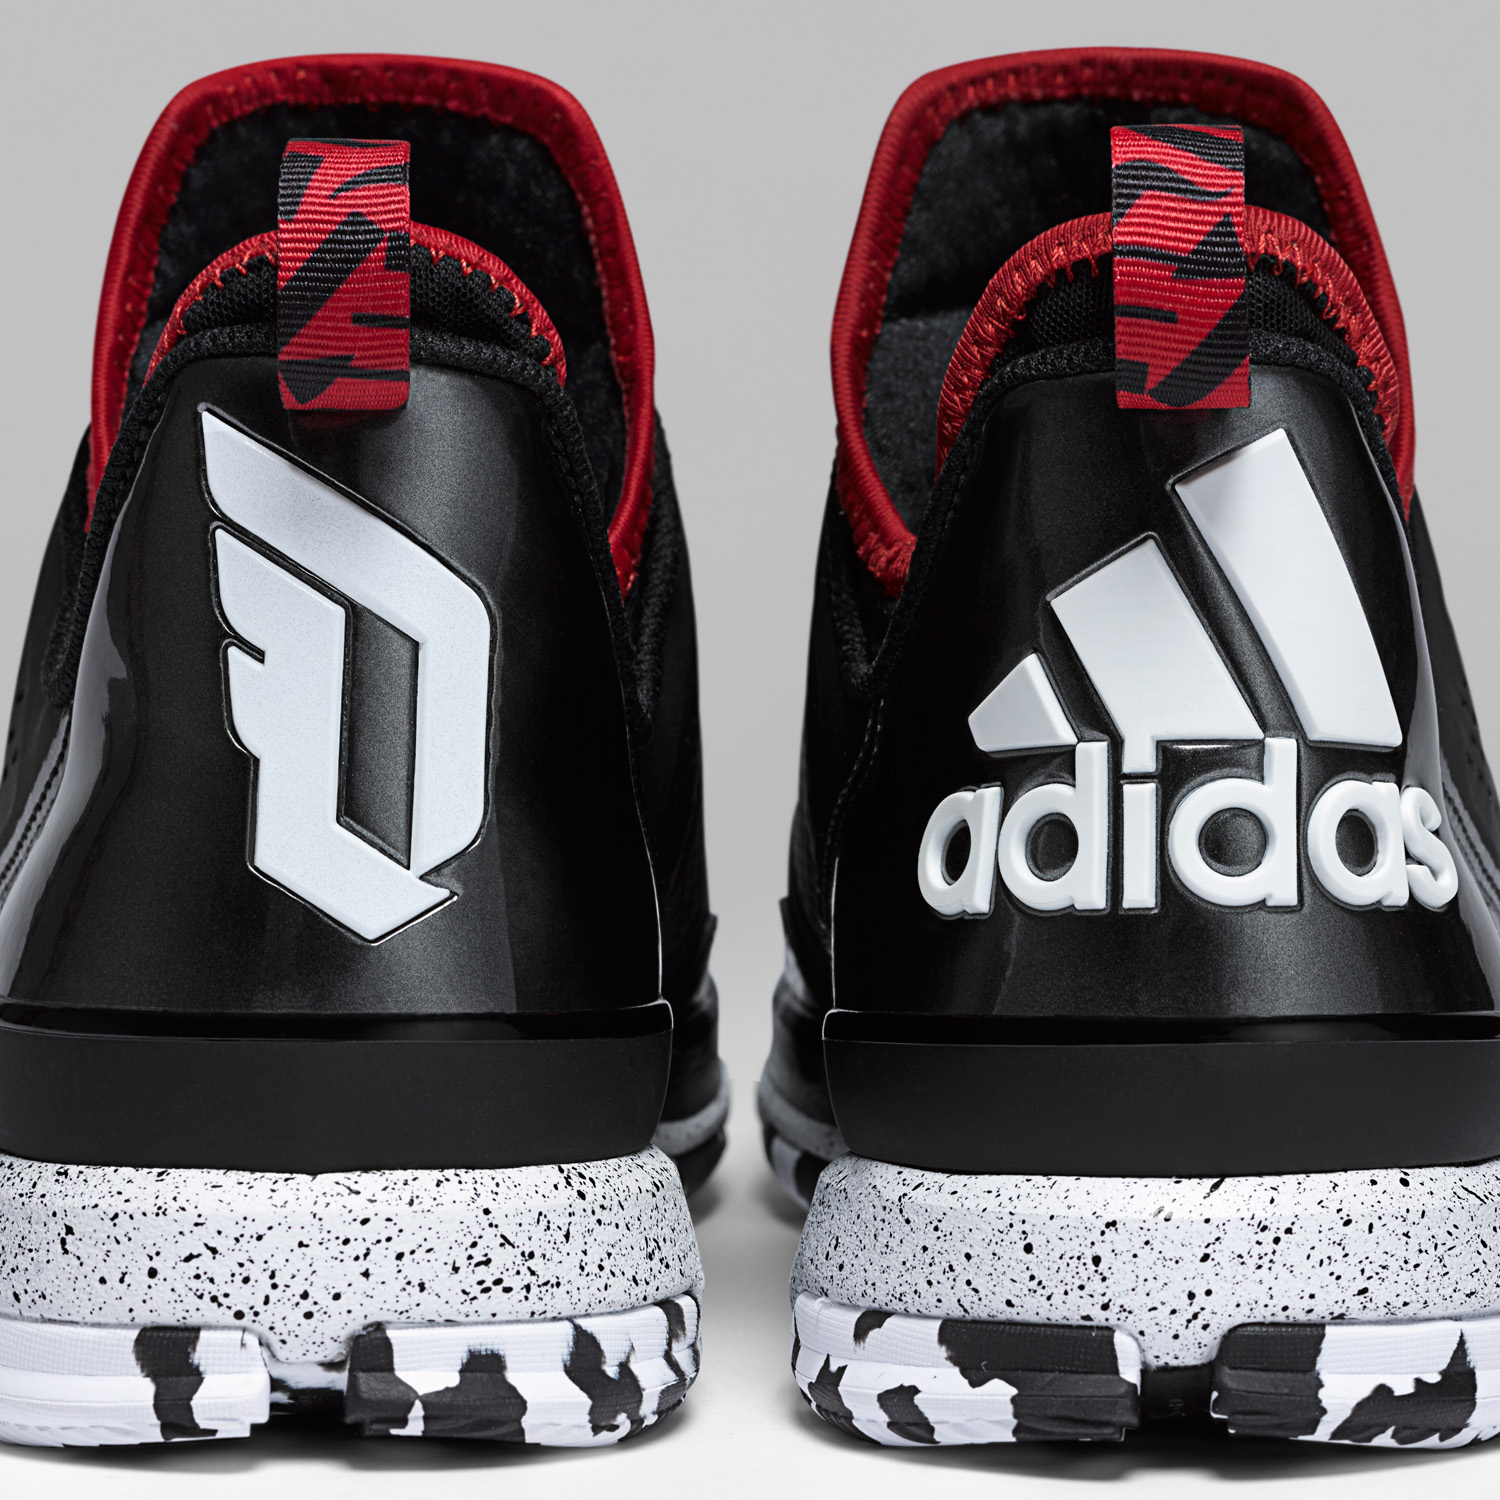 adidas basketball shoes lillard